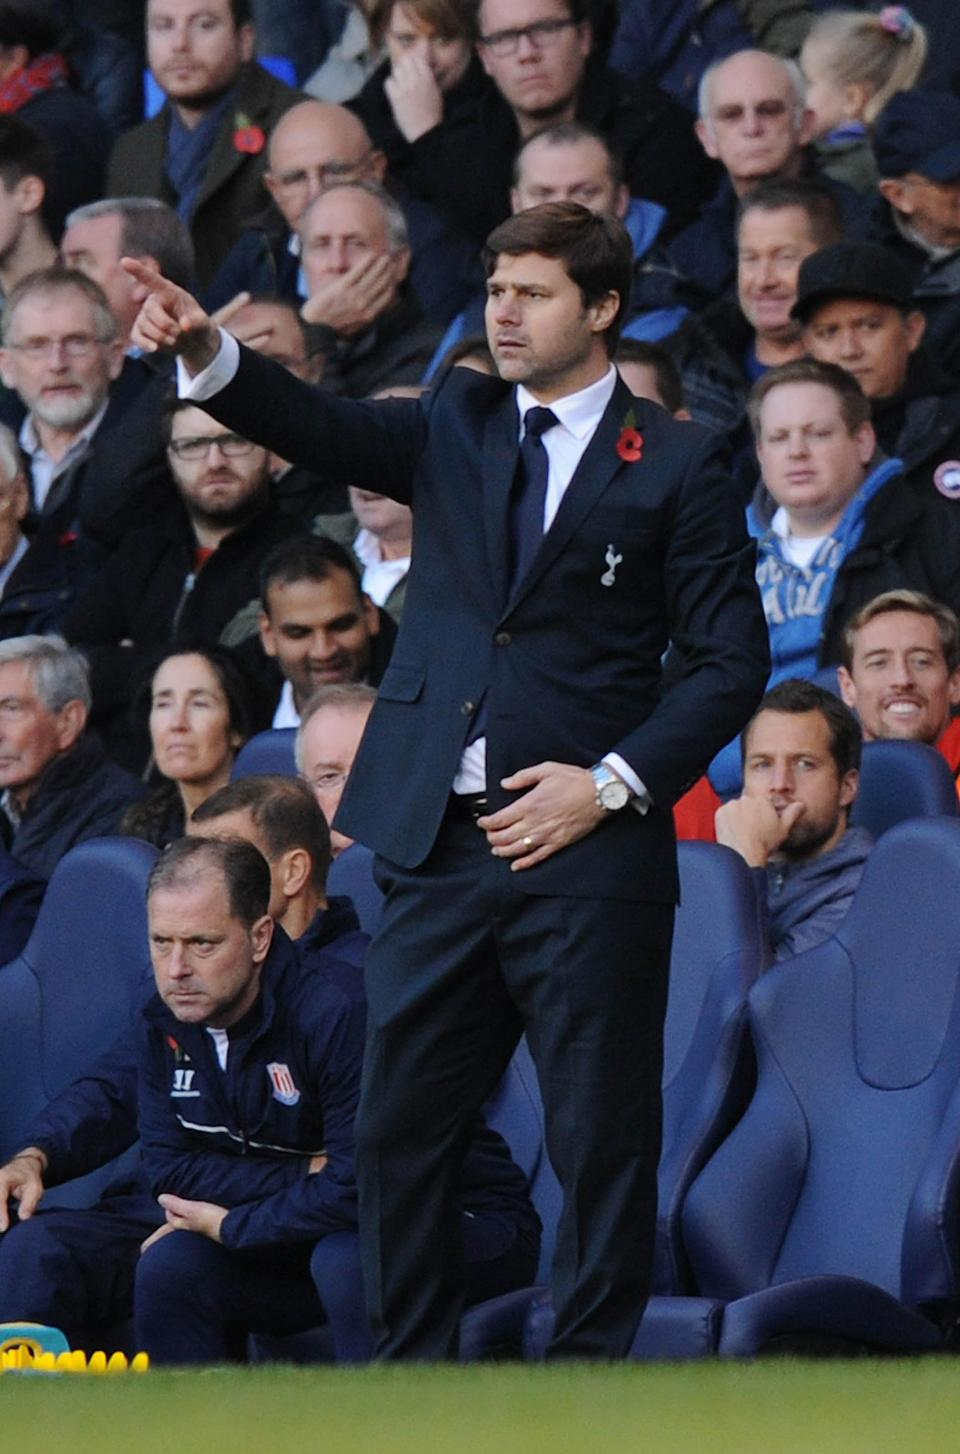 Tottenham Hotspur's Argentinian head coach Mauricio Pochettino gestures during the English Premier League football match against Stoke City at White Hart Lane in north London on November 9, 2014 (AFP Photo/Olly Greenwood)